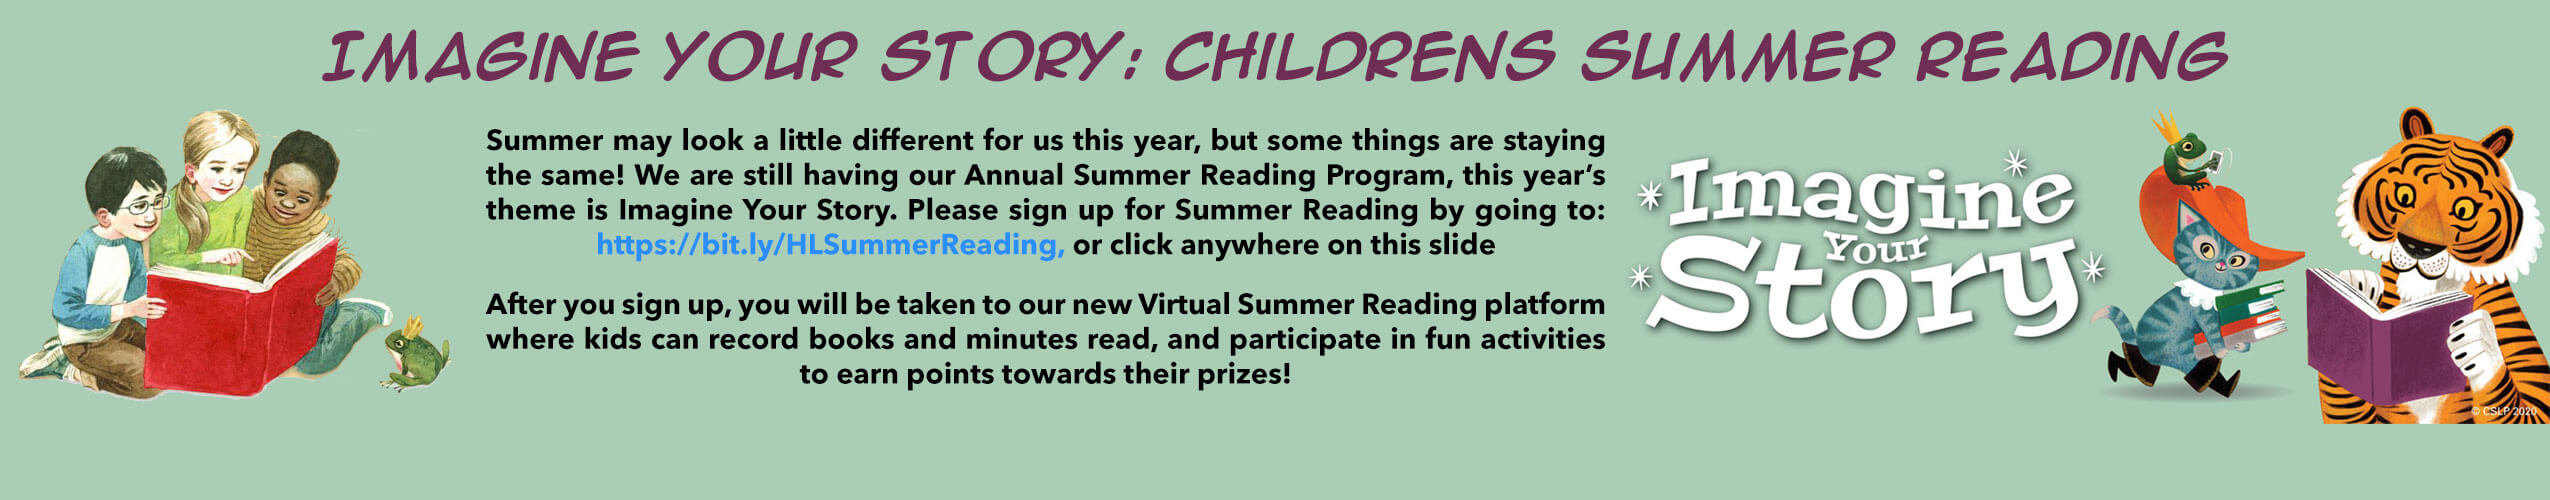 Children's Summer Reading